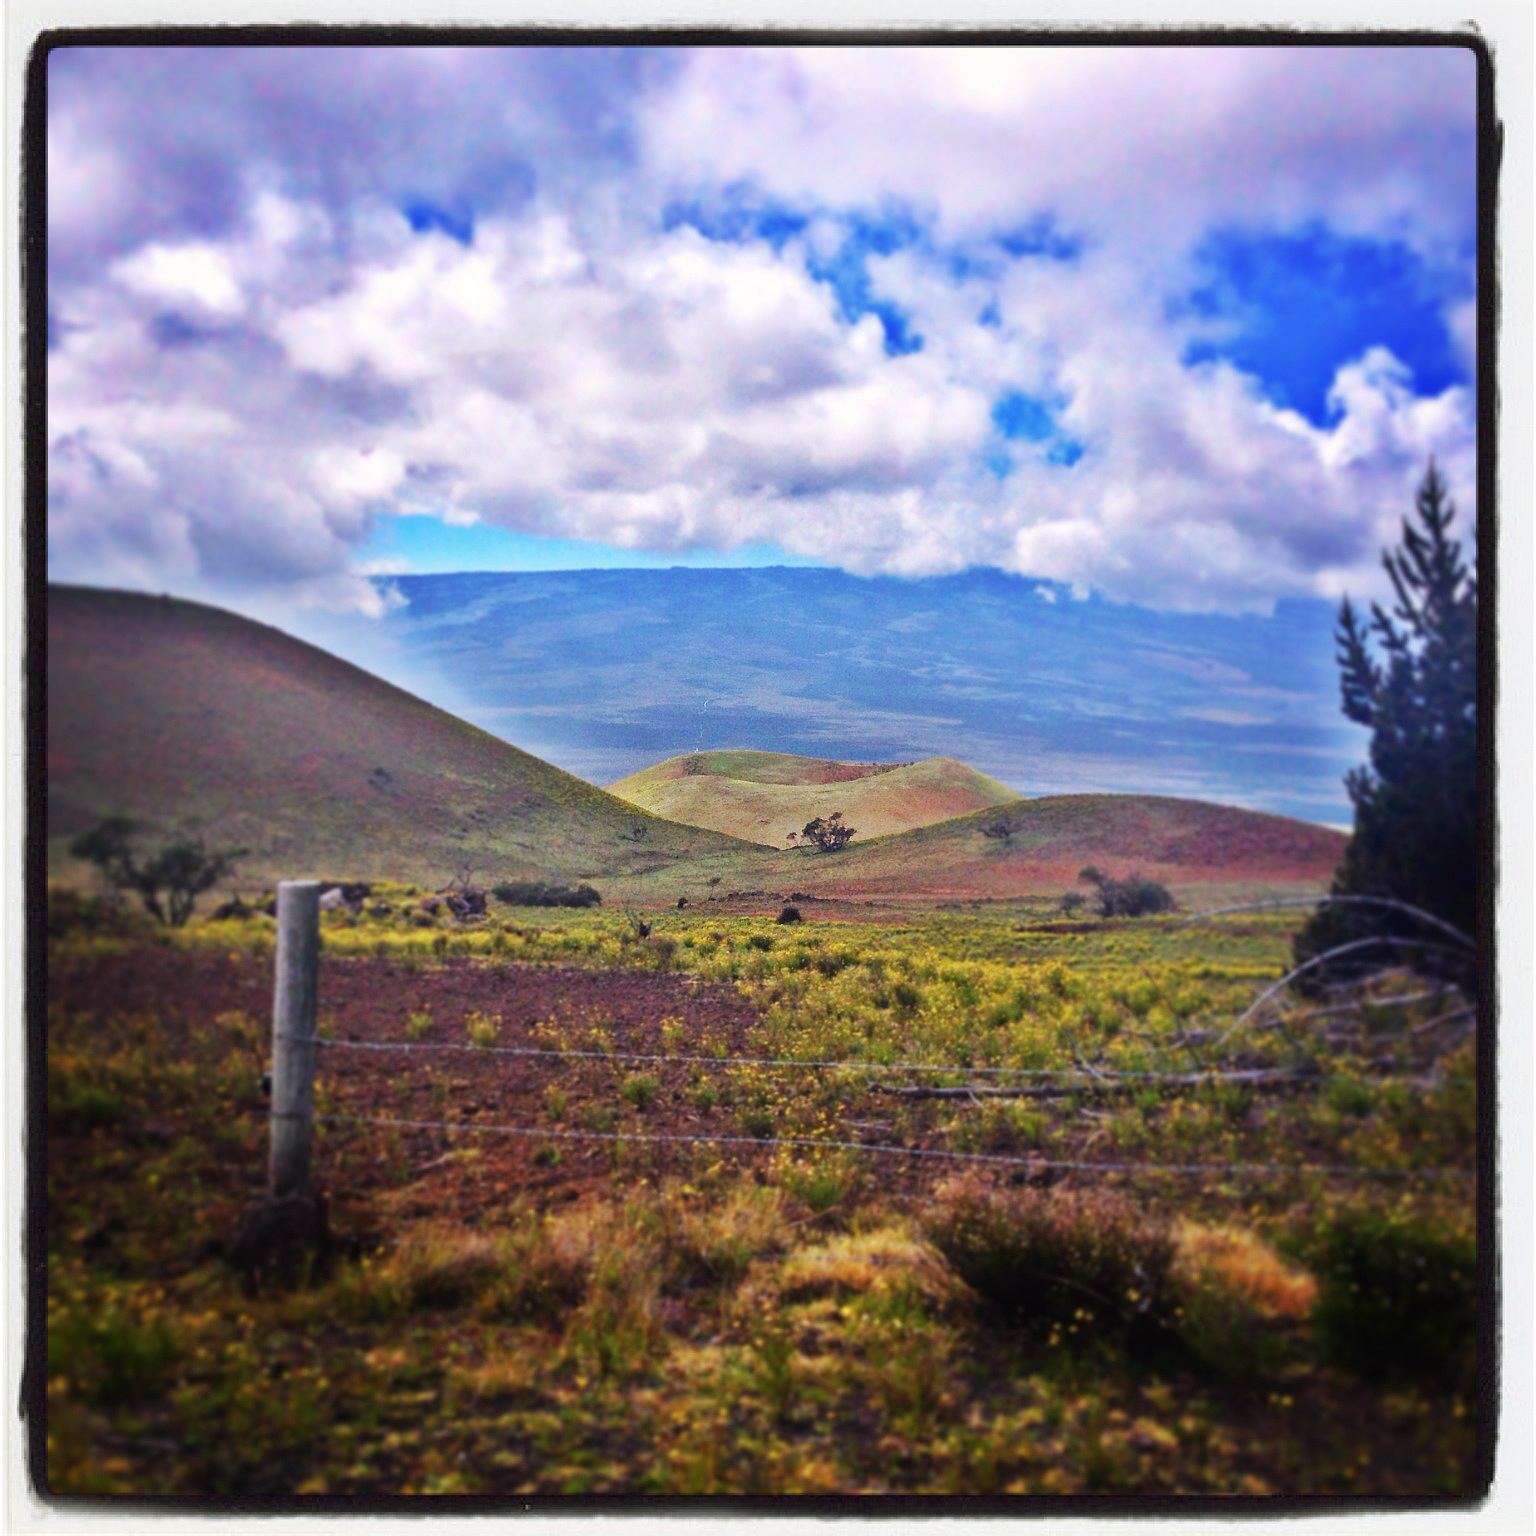 Mauna Kea Report – Tuesday, Nov. 25